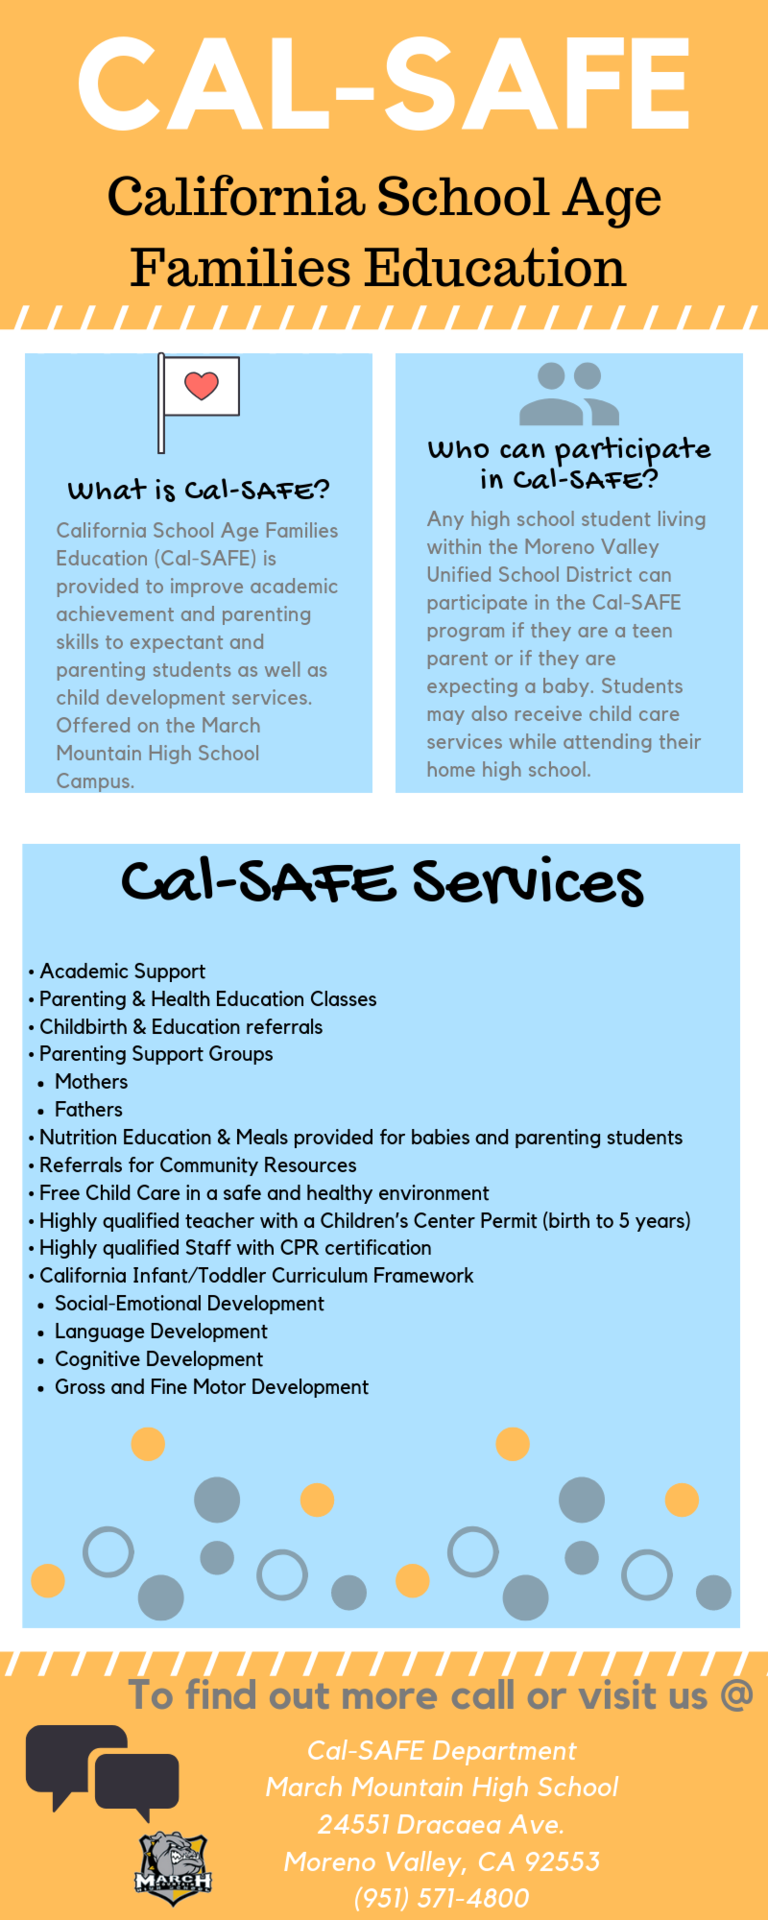 Cal-SAFE Infographic